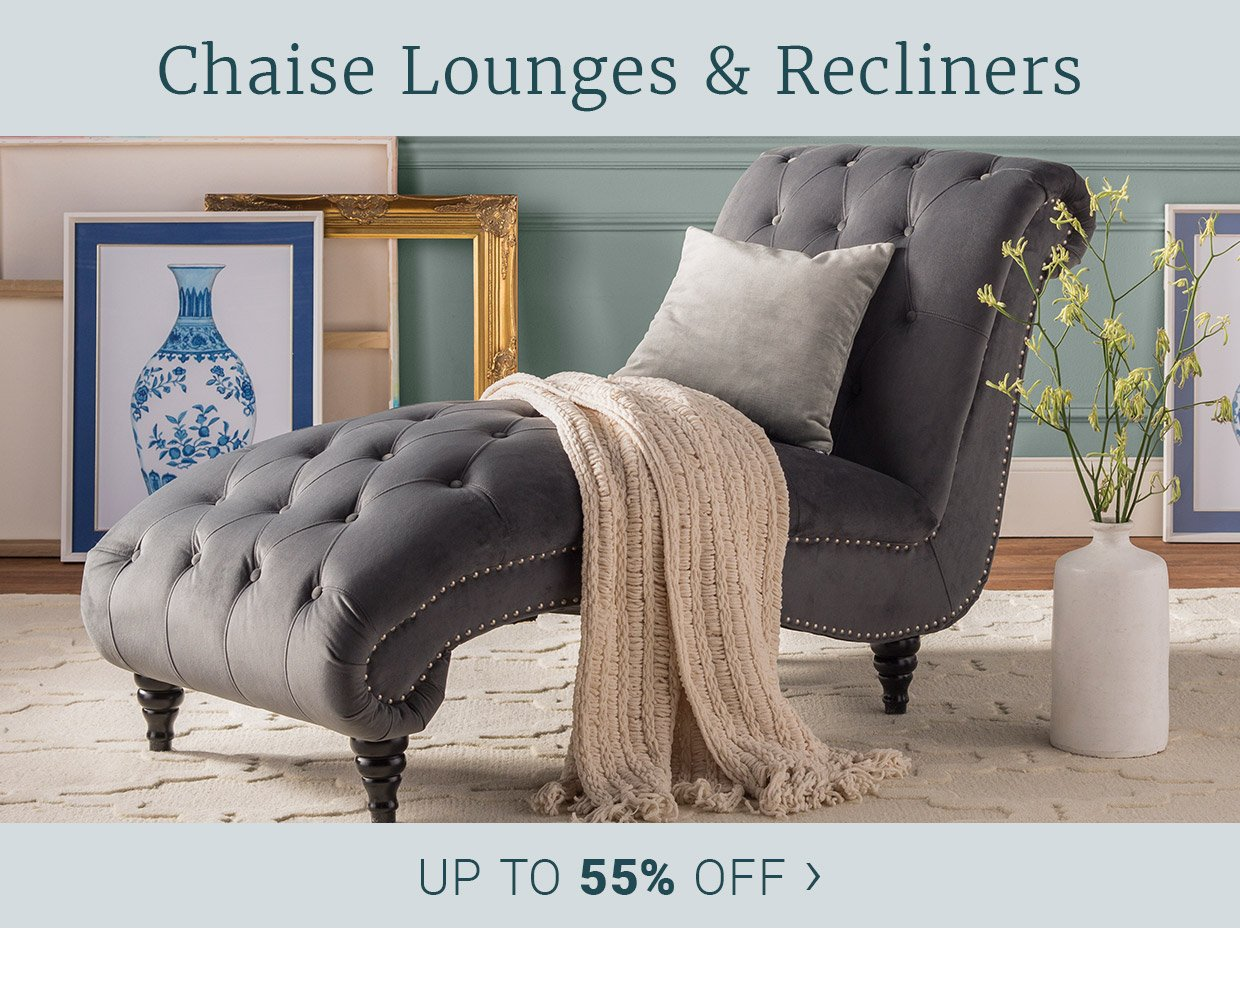 Chaise Lounges & Recliners